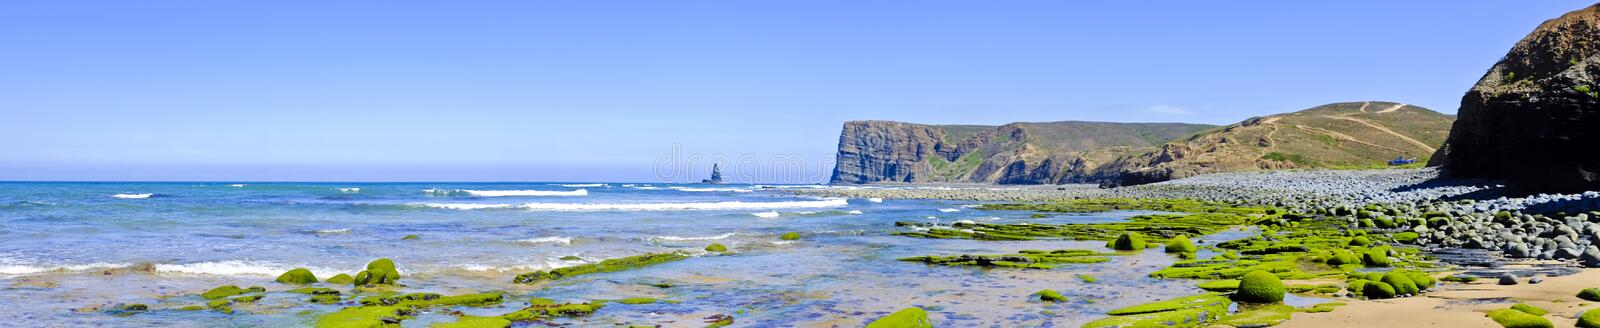 Download Panorama From Rocks And Ocean In Portugal Stock Image - Image: 32598991